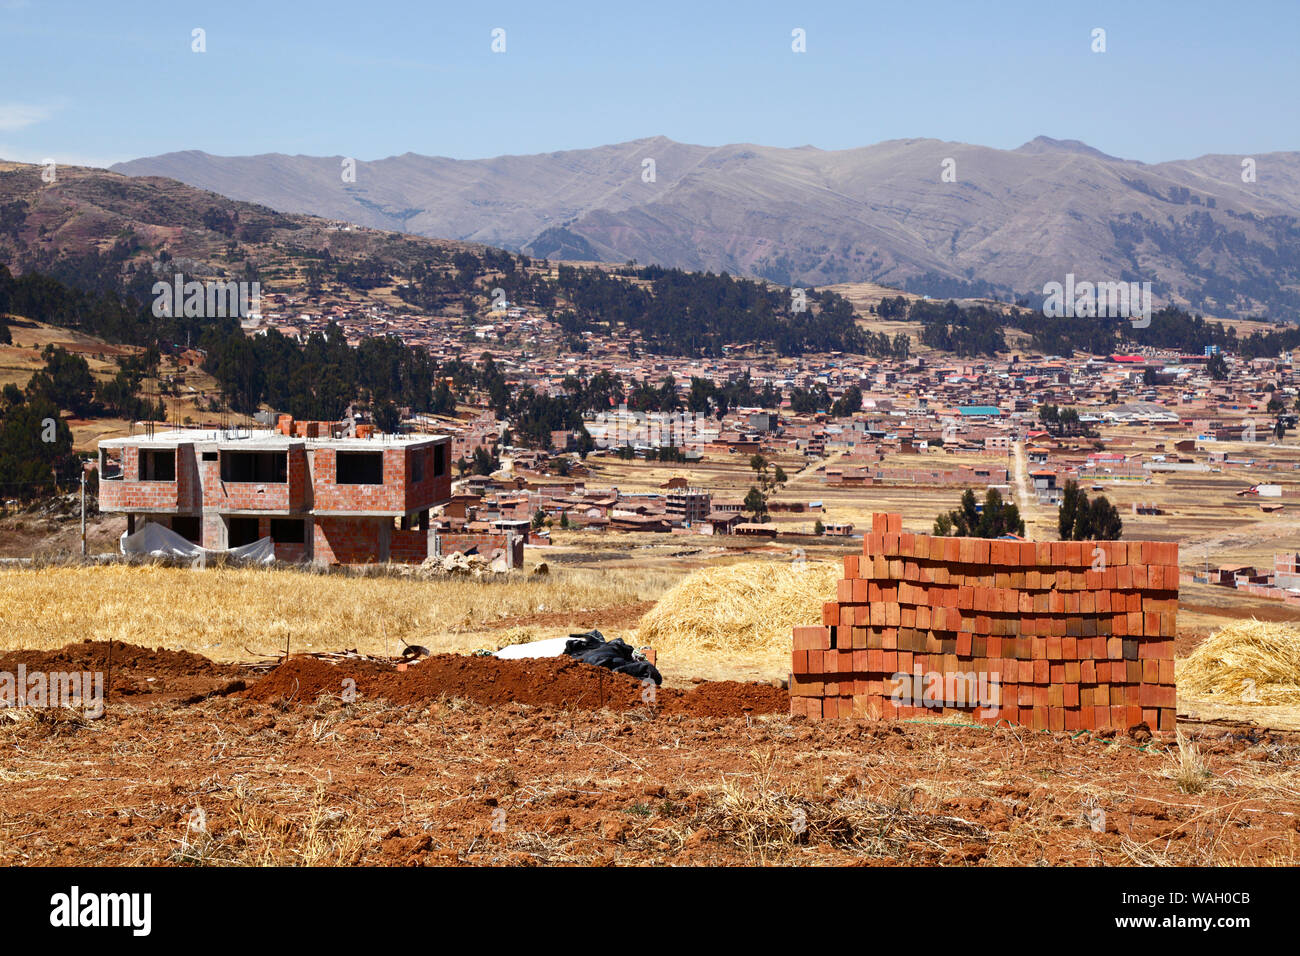 Building Under Construction At Nuevo Chinchero Near The Original Village Of Chinchero In Background Financed By This background are in hdr cb background. alamy